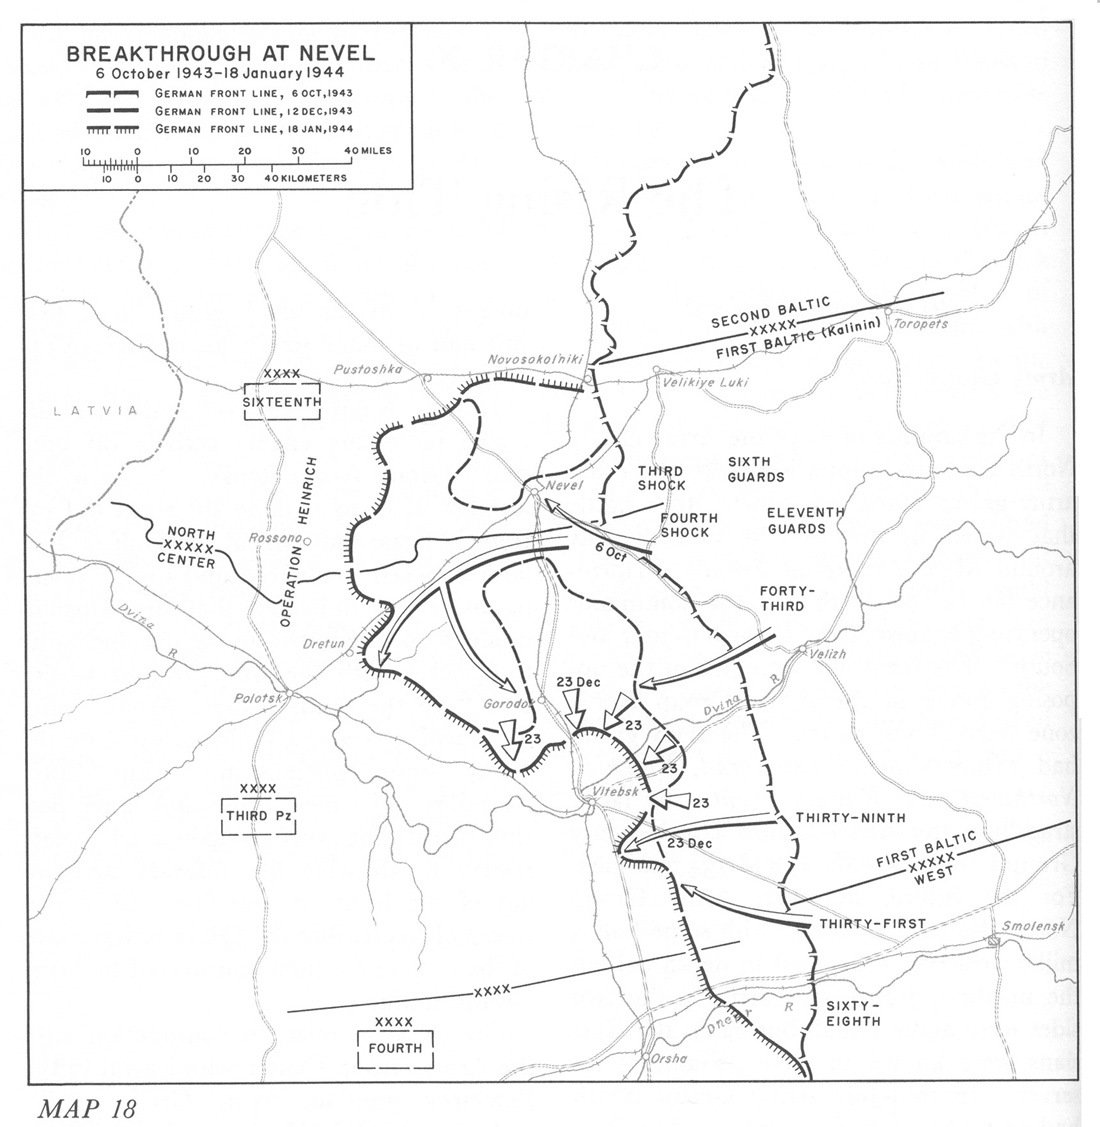 hyperwar stalingrad to berlin the german defeat in the east Ww2 Rifles breakthrough at nevel 6 october 1943 18 january 1944